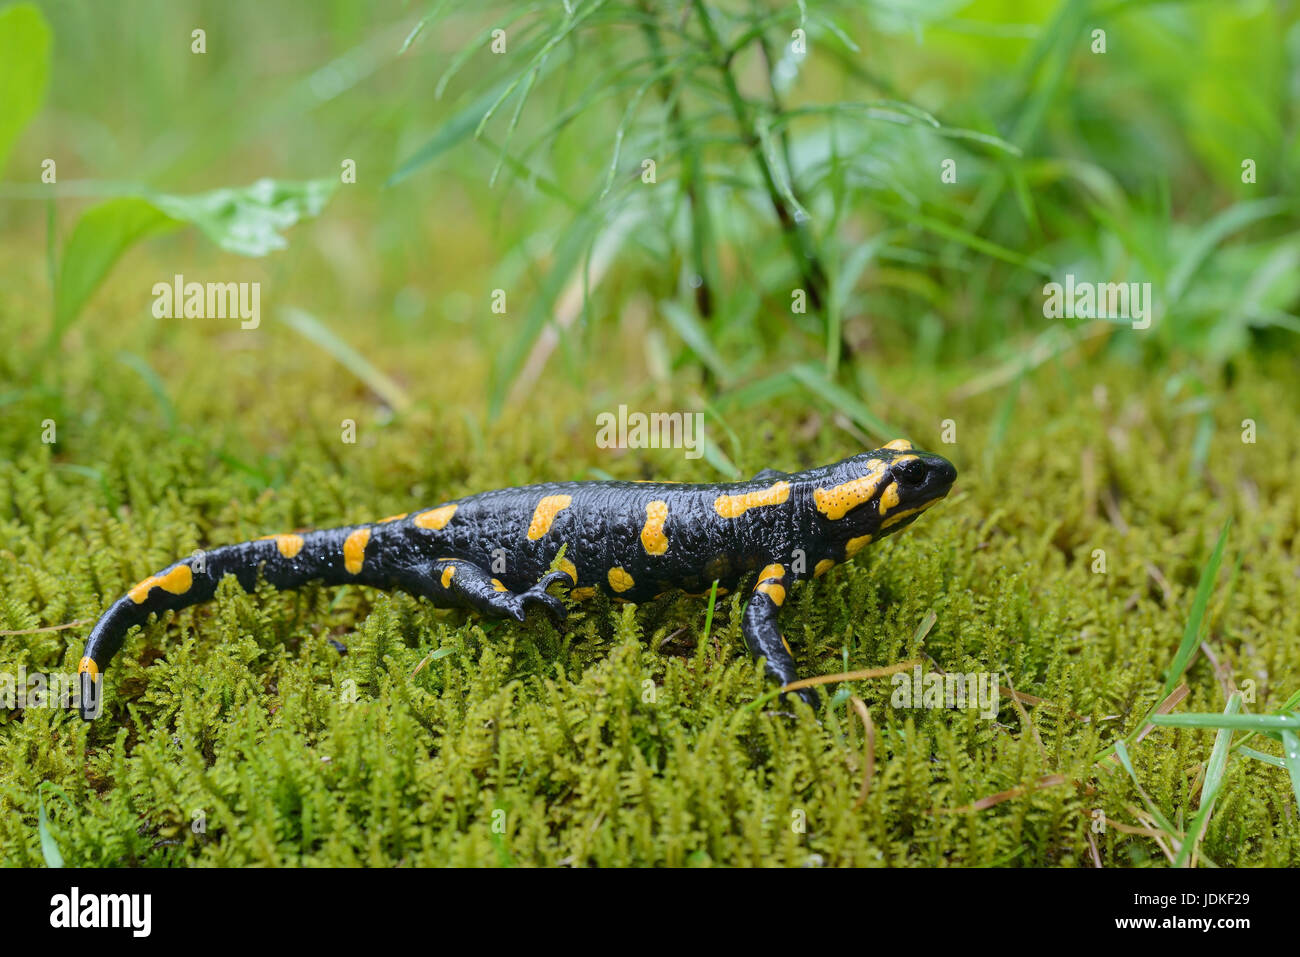 Spotted salamander sits on moss, Feuersalamander sitzt auf Moos - Stock Image